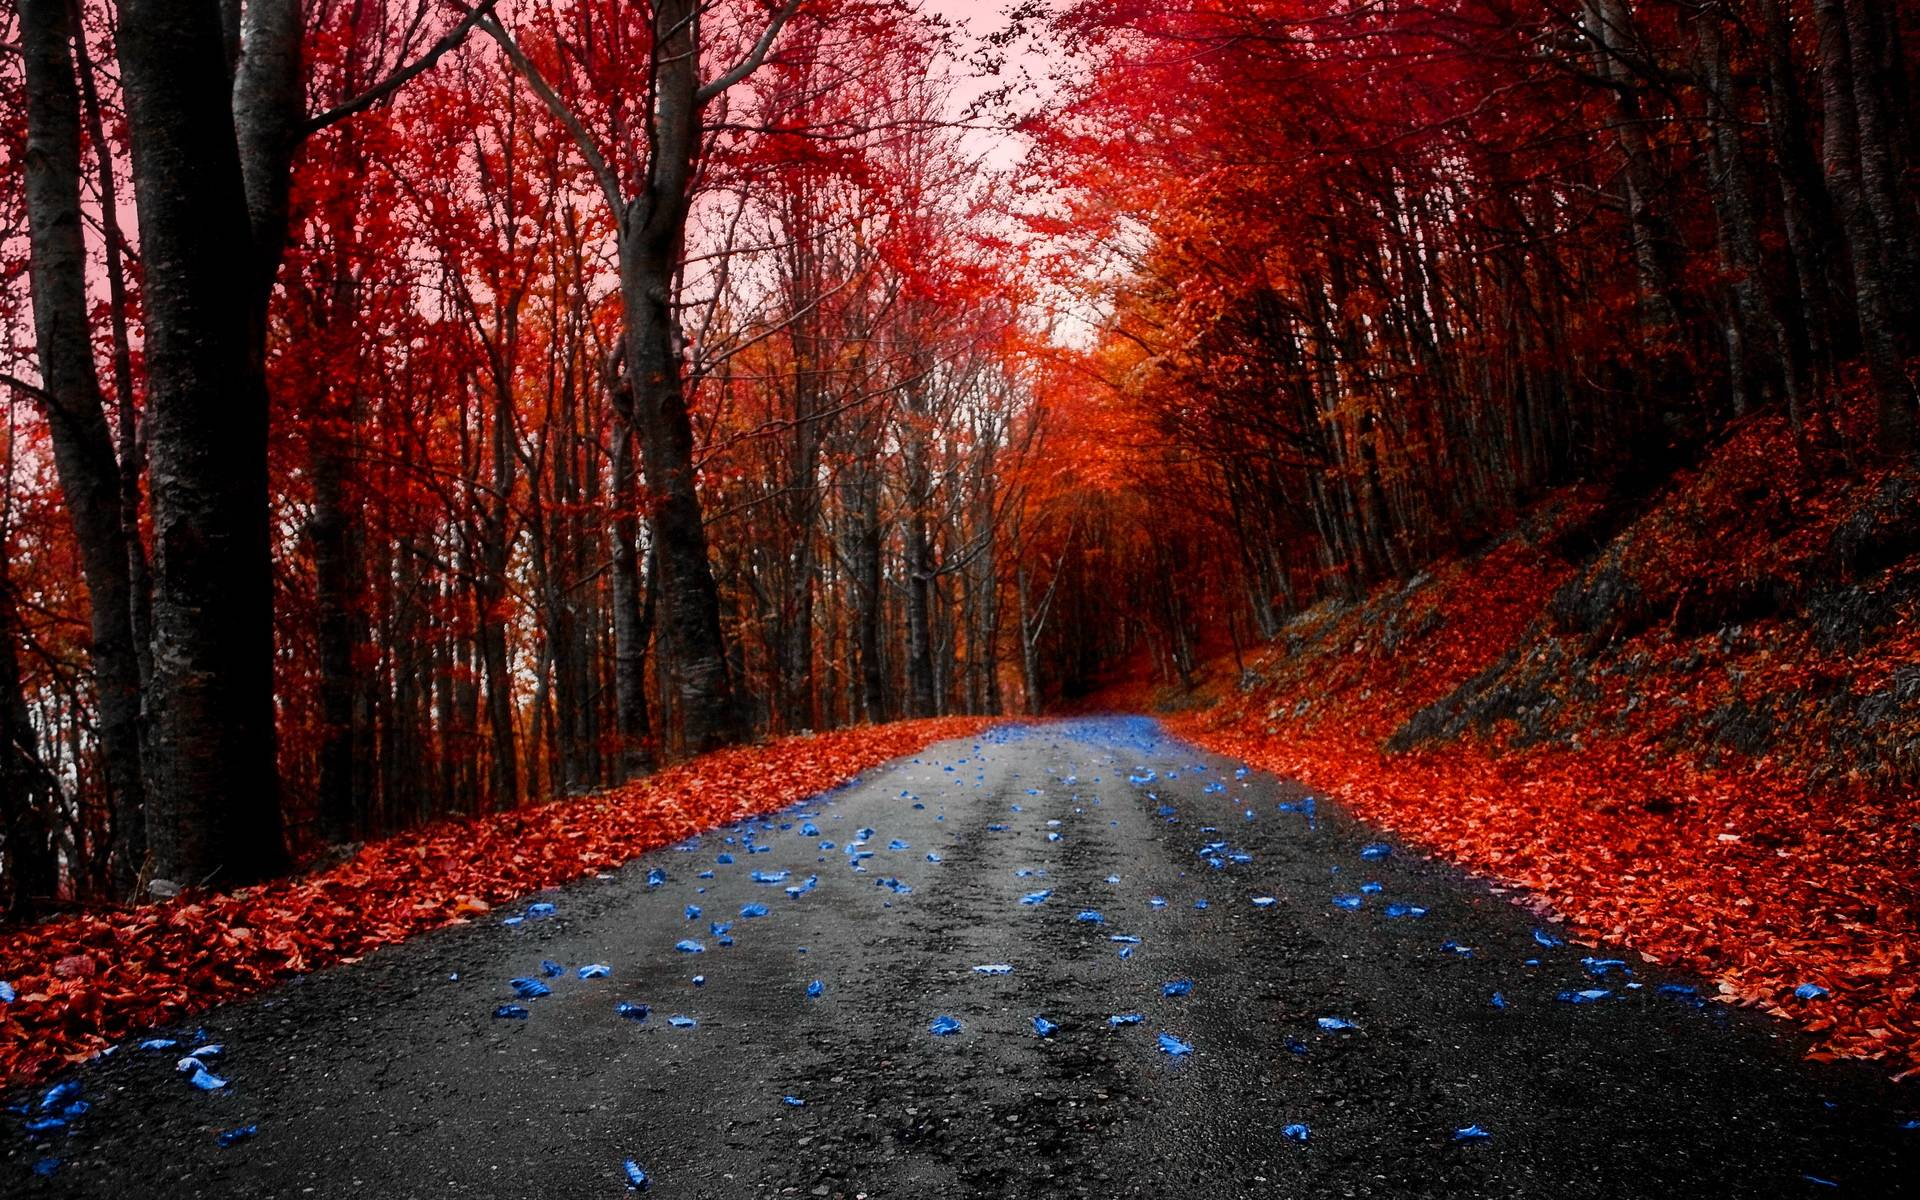 Autumn Tree Leaf Fall Animated Wallpaper Red Nature Wallpapers Wallpaper Cave